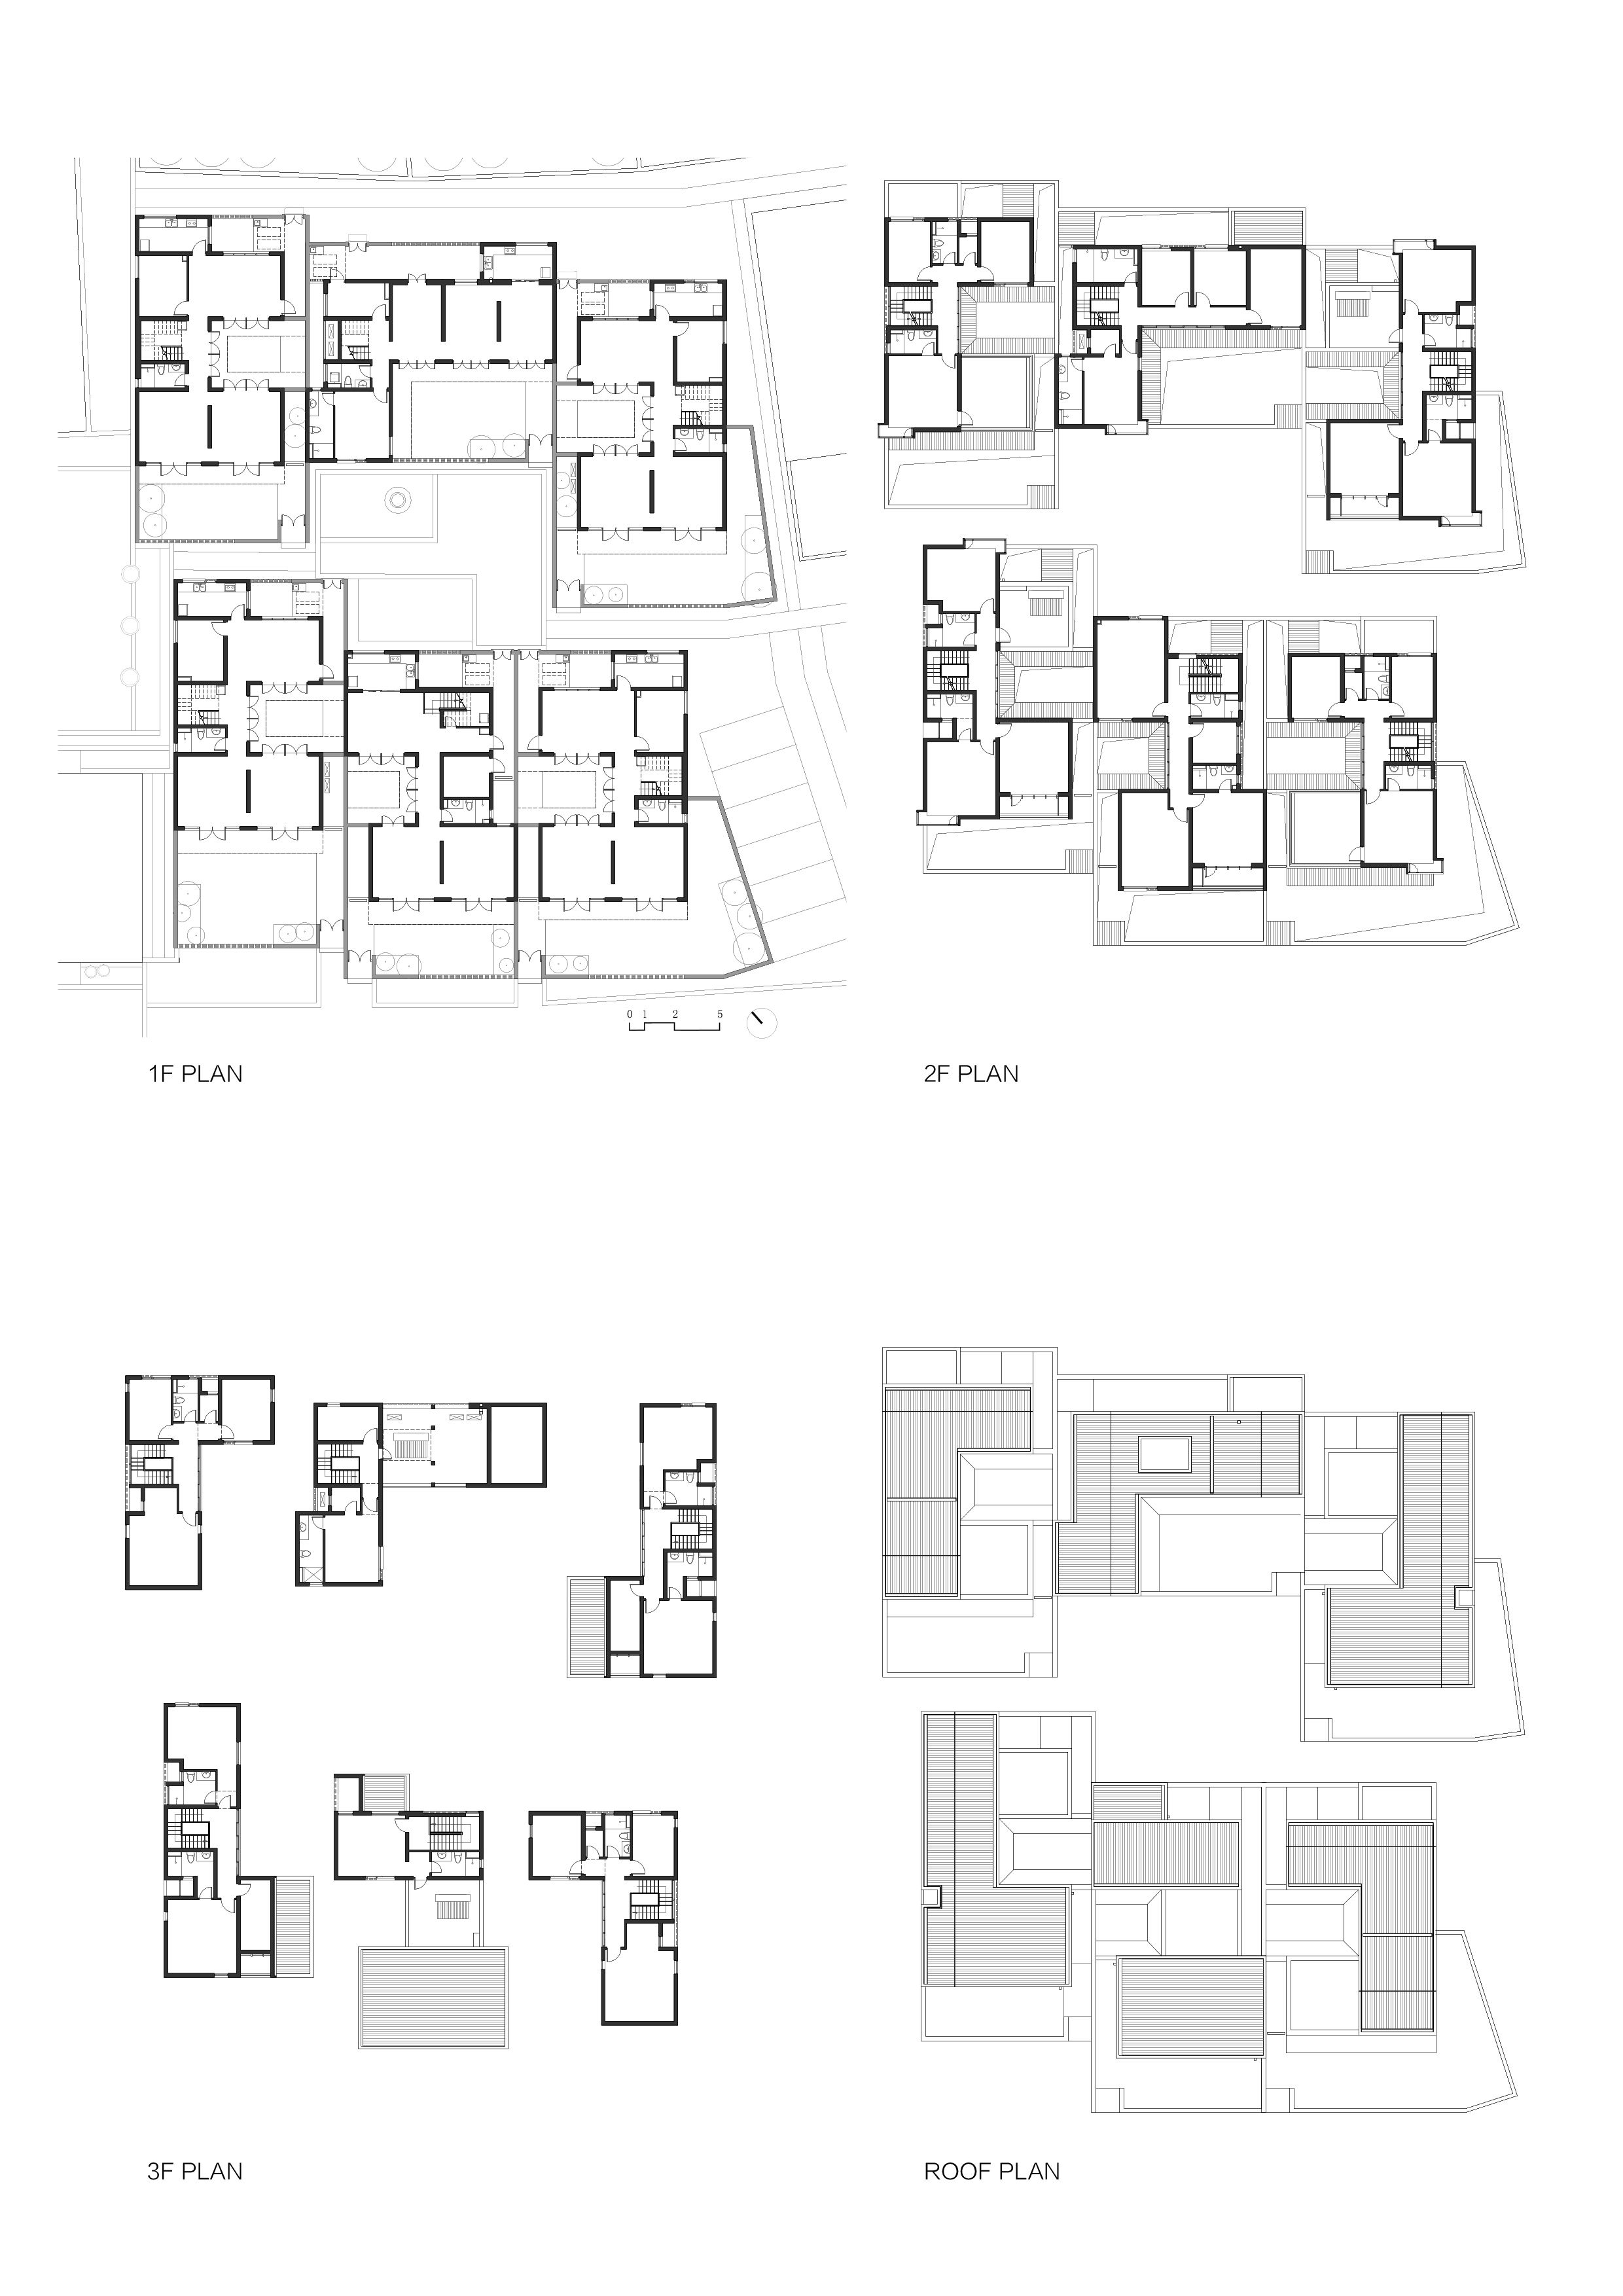 Gad Line Studio Creates Low Cost Housing In Rural Chinese Village Grid Architecture Low Cost Housing Hospital Plans